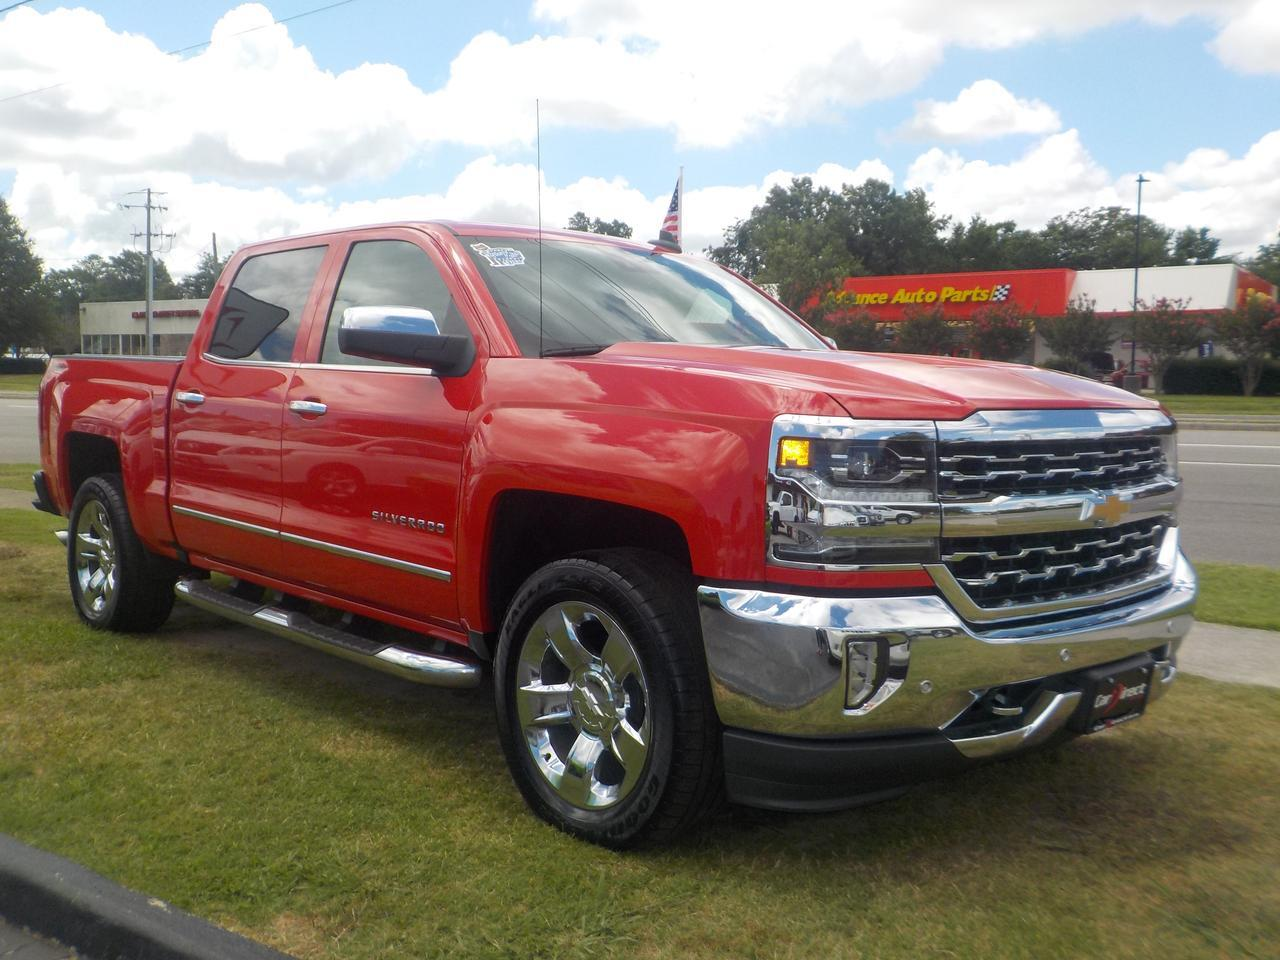 2017 CHEVROLET SILVERADO LTZ CREW CAB 4X4, LEATHER, HEATED/COOLED SEATS, NAV, BLUETOOTH, SUNROOF, BACKUP CAM, 1 OWNER!